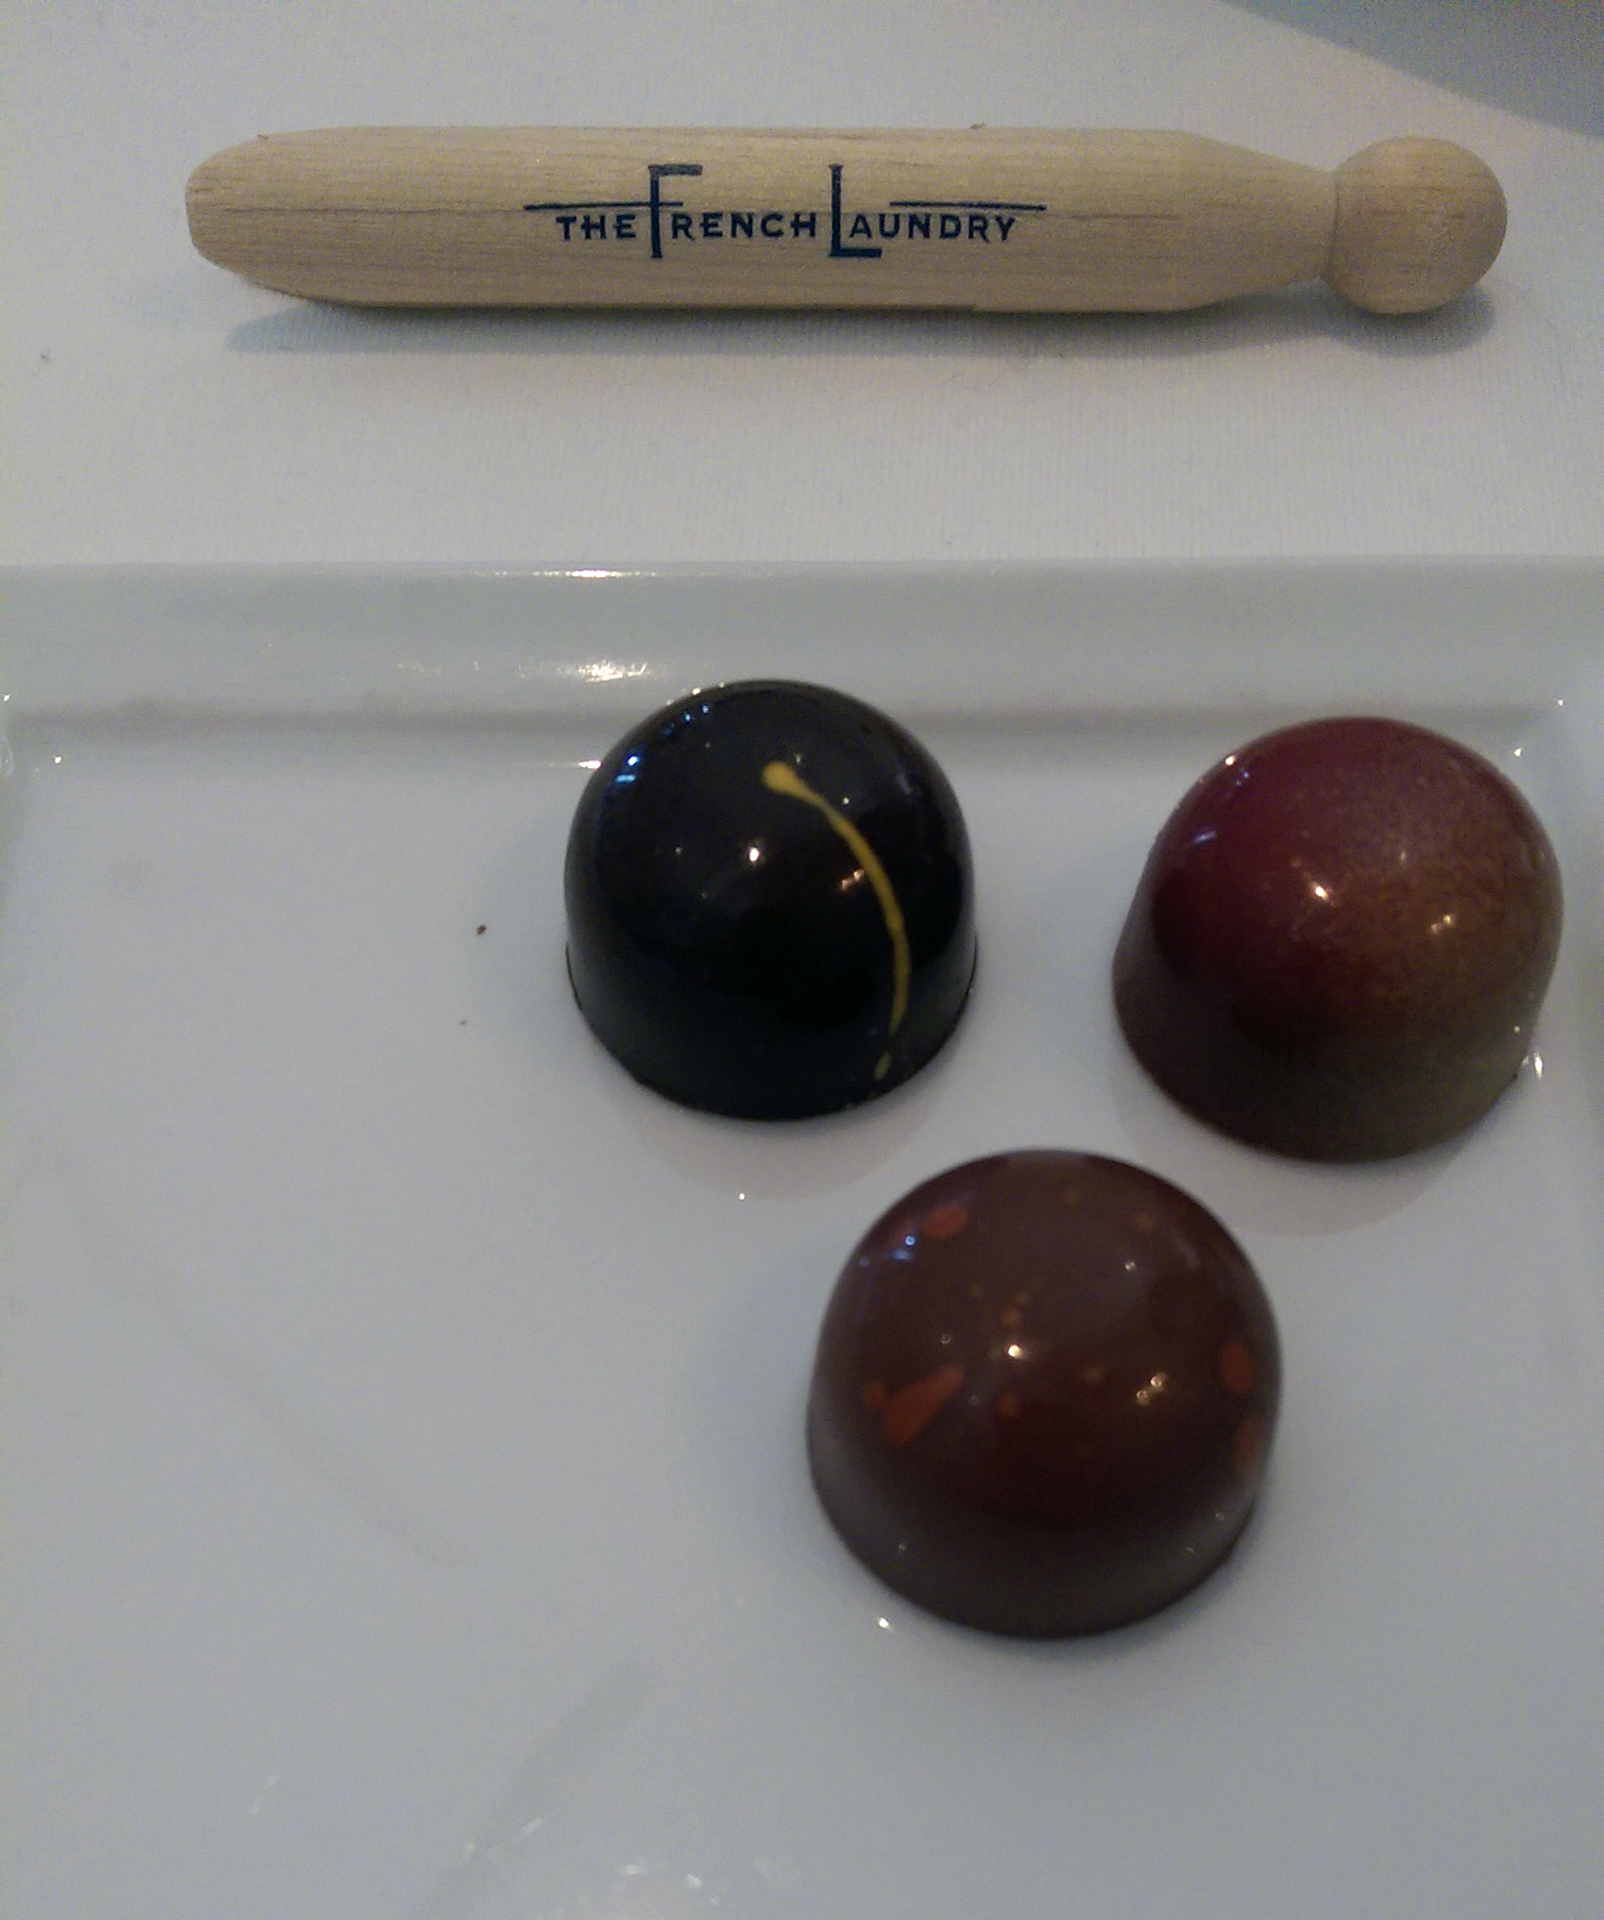 The-French-Laundry-petit-fours